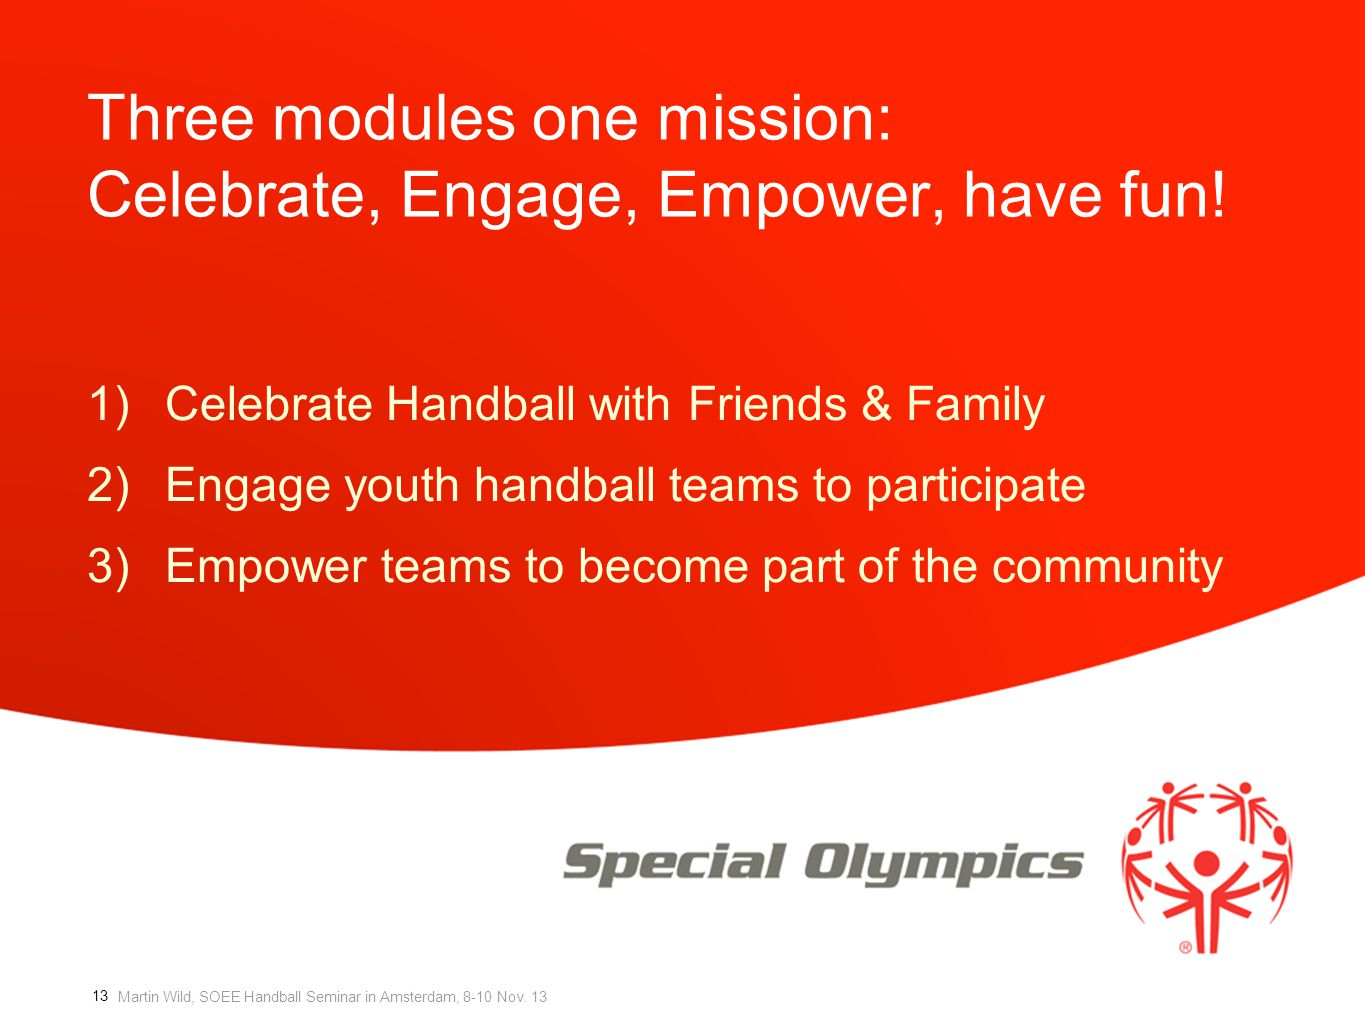 Martin Wild, SOEE Handball Seminar in Amsterdam, 8-10 Nov. 13 Three modules one mission: Celebrate, Engage, Empower, have fun! 1)Celebrate Handball wi